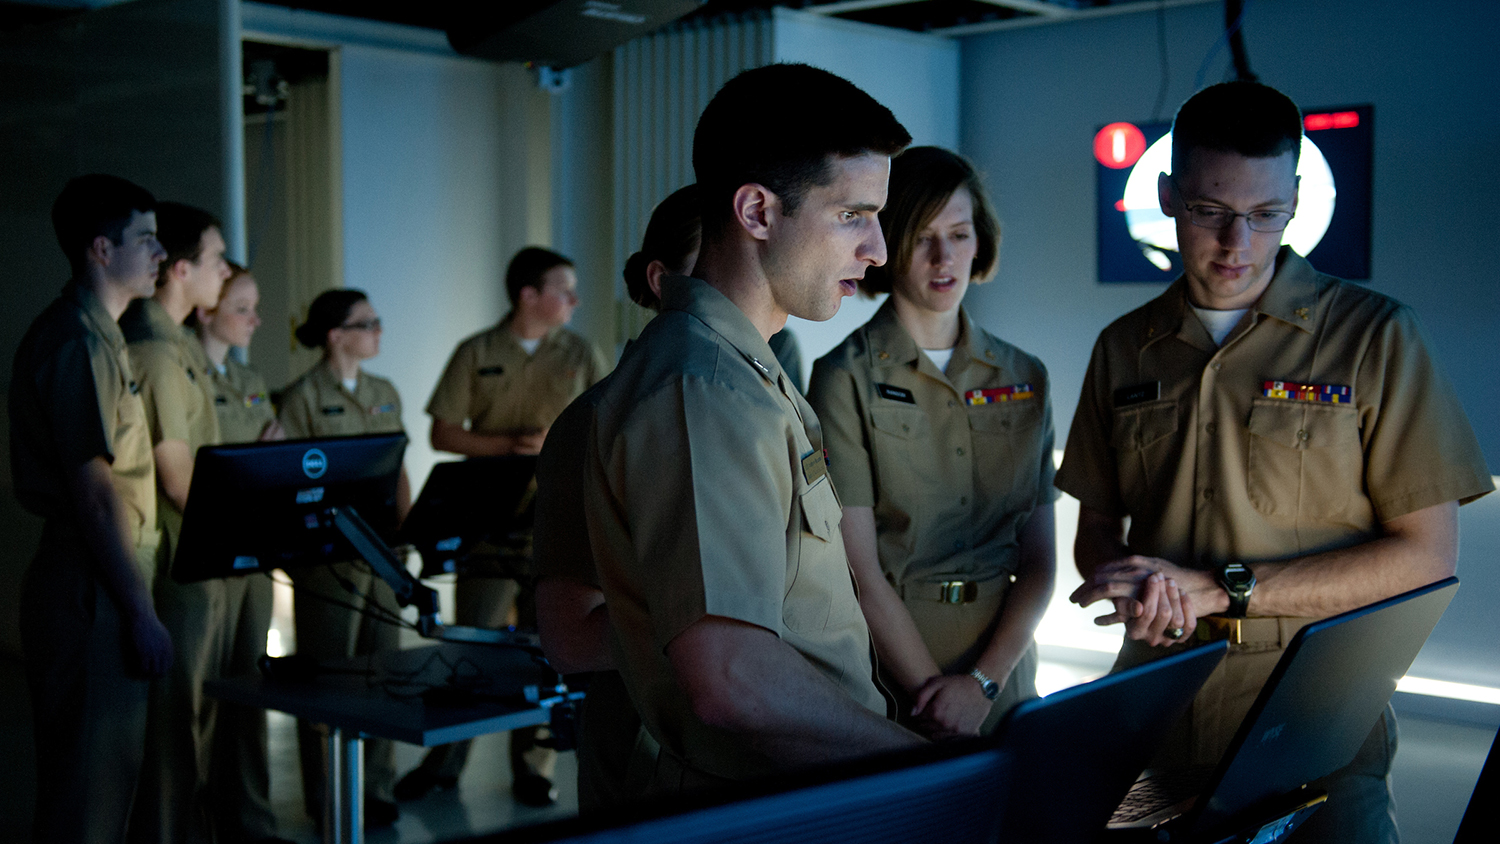 Navy ROTC students practice ship management during a virtual simulation at the James B. Hunt Library.